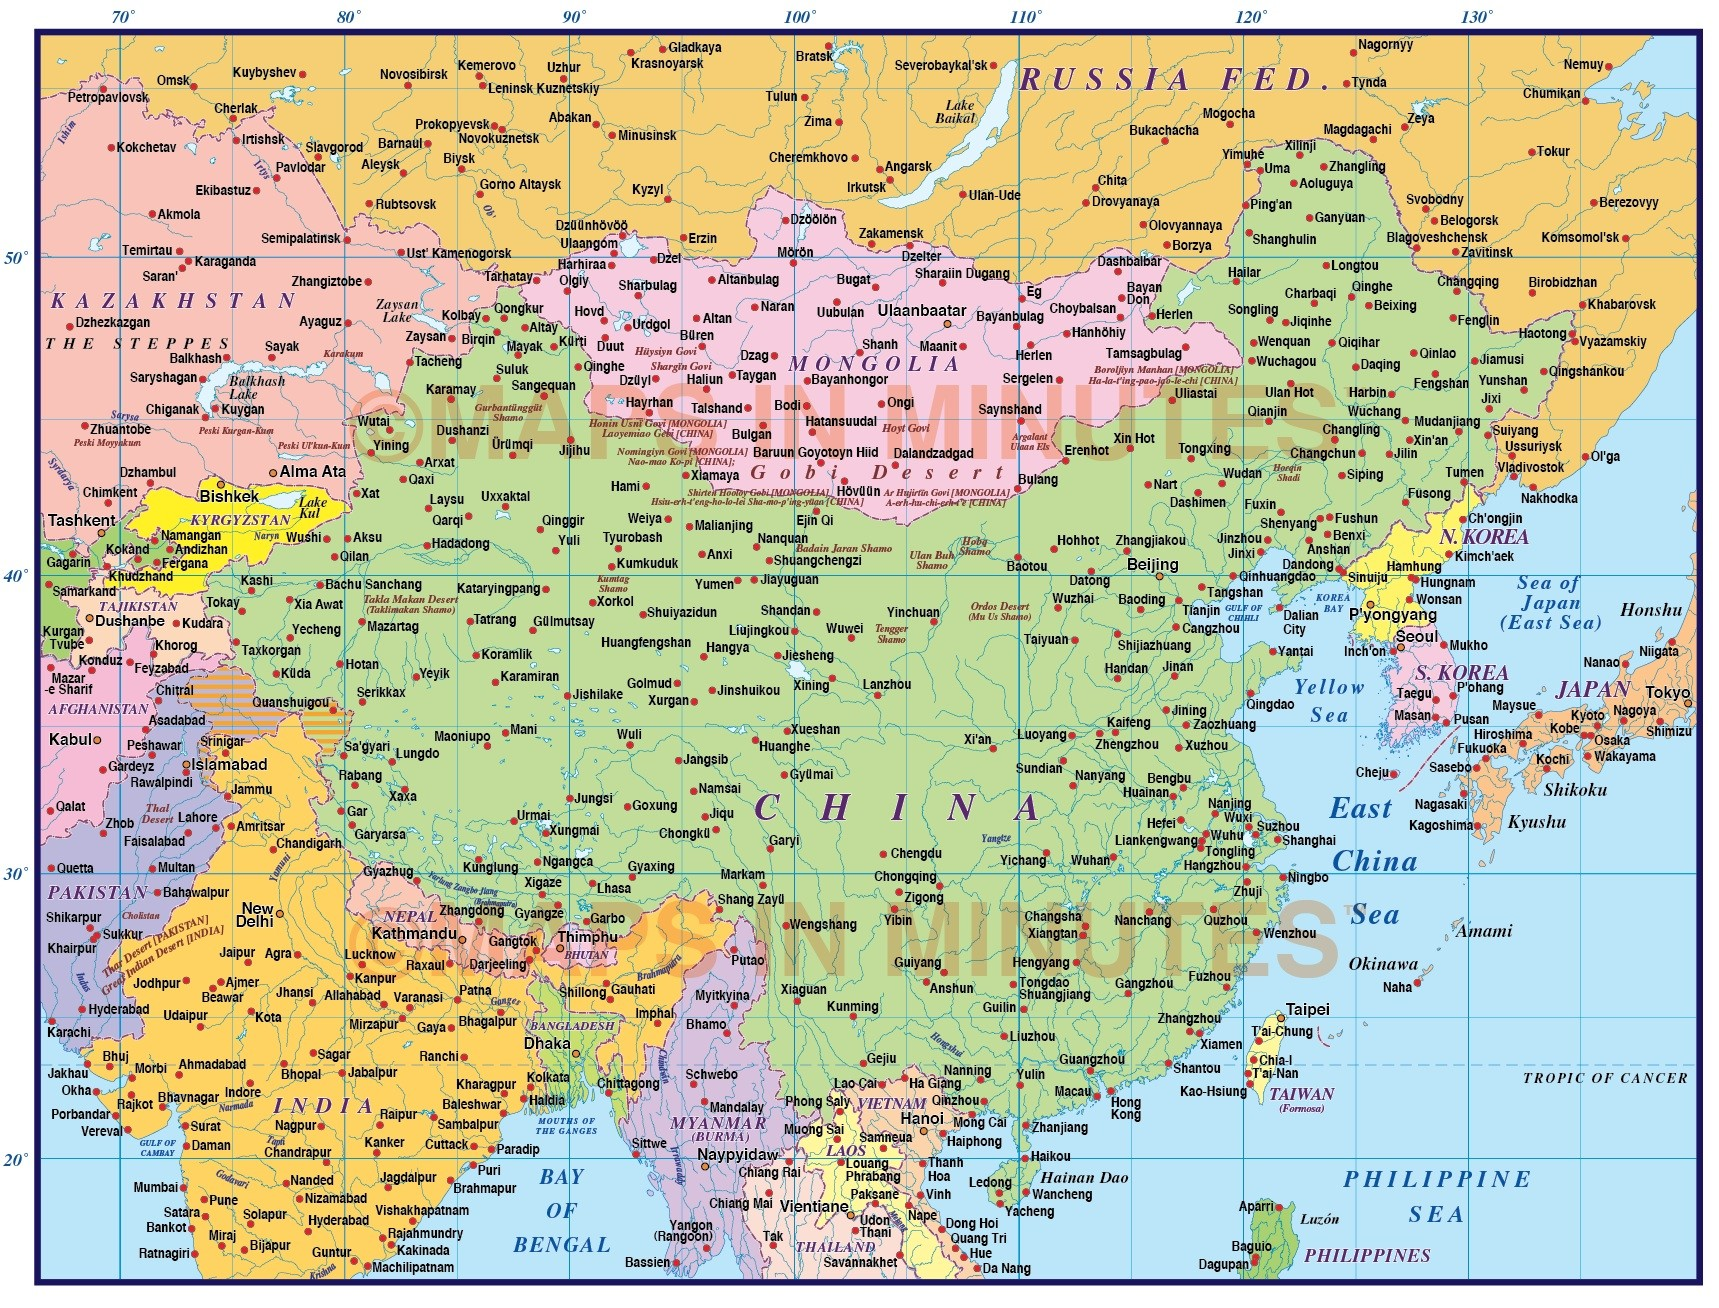 Chinese Political Map.China First Level Political Country Map 10 000 000 Scale In